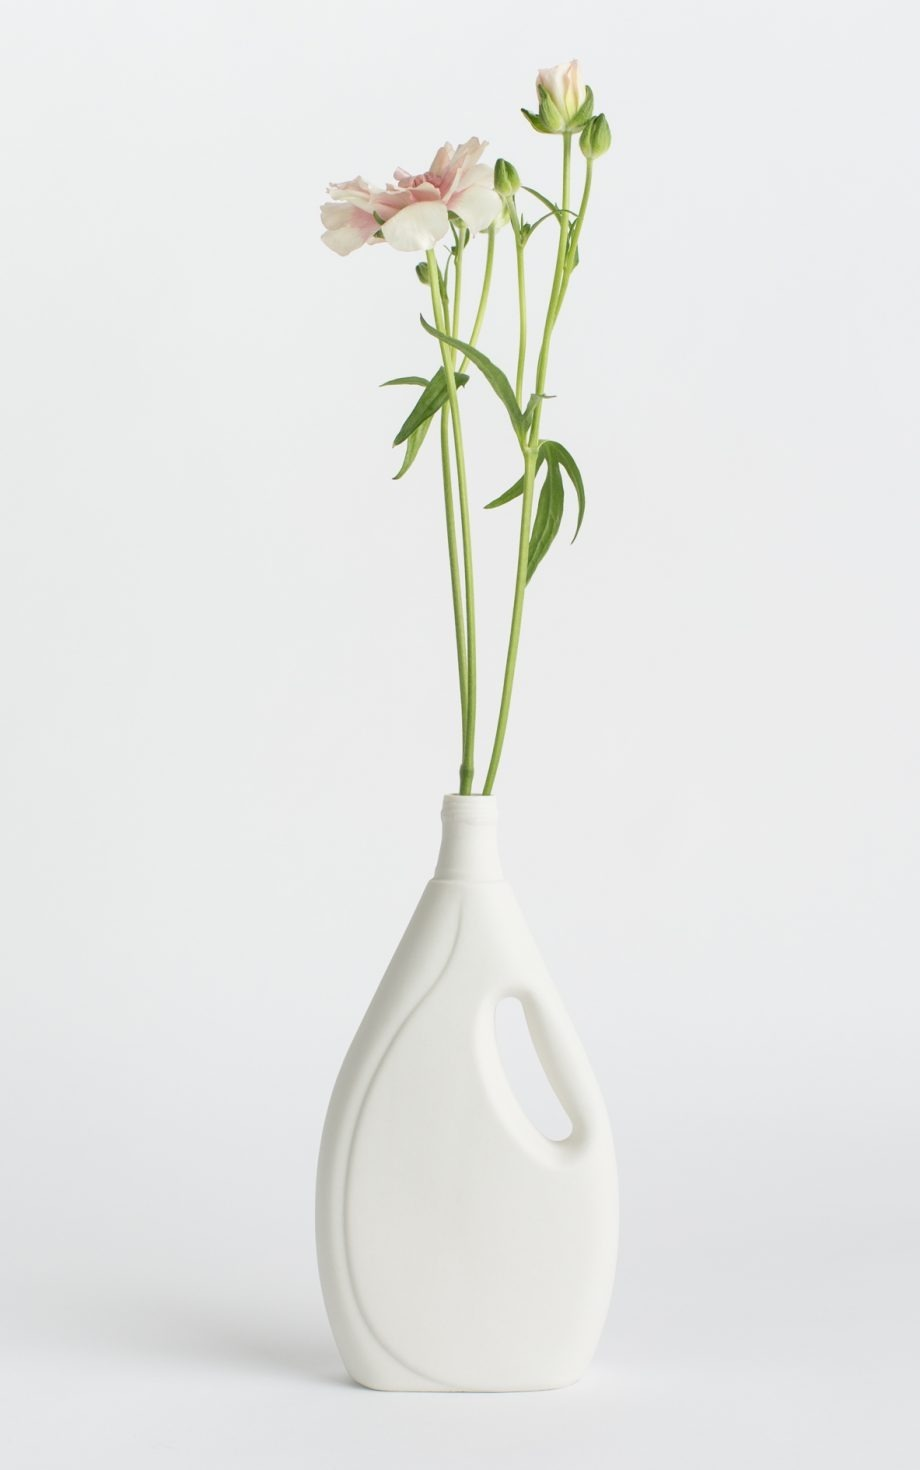 bottle vase #7 white with flower